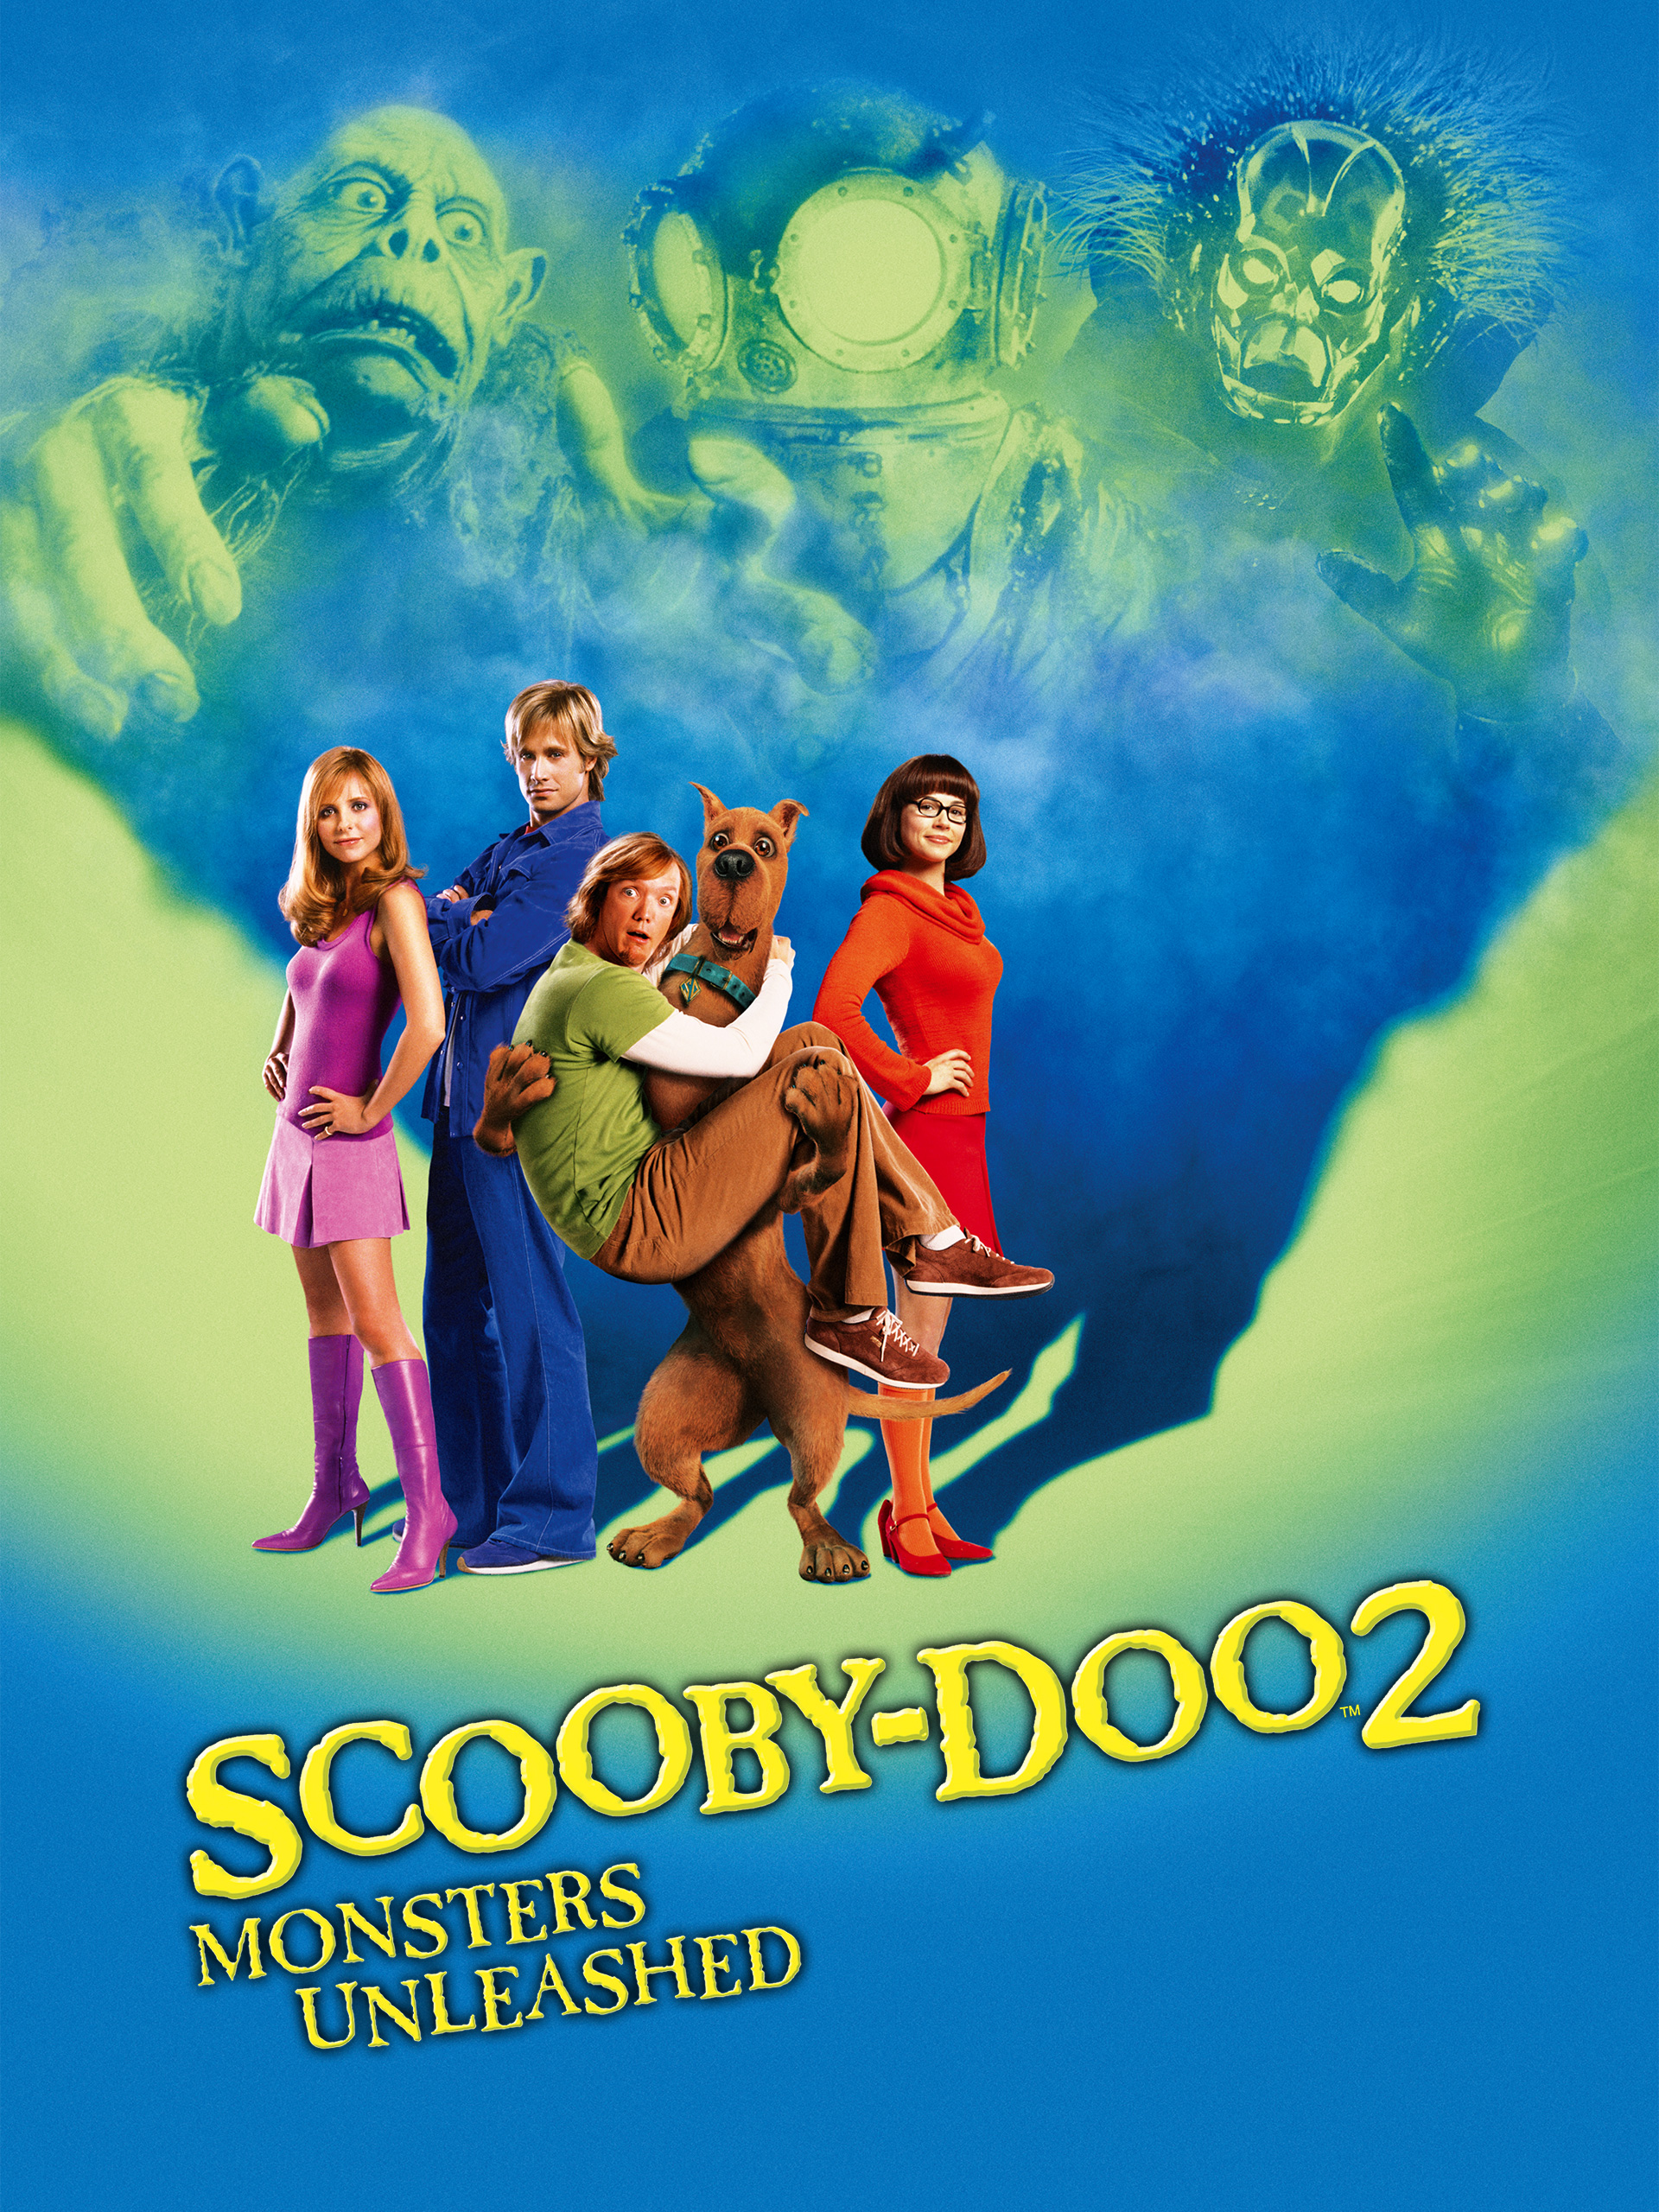 Prime Video Scooby Doo 2 Monsters Unleashed